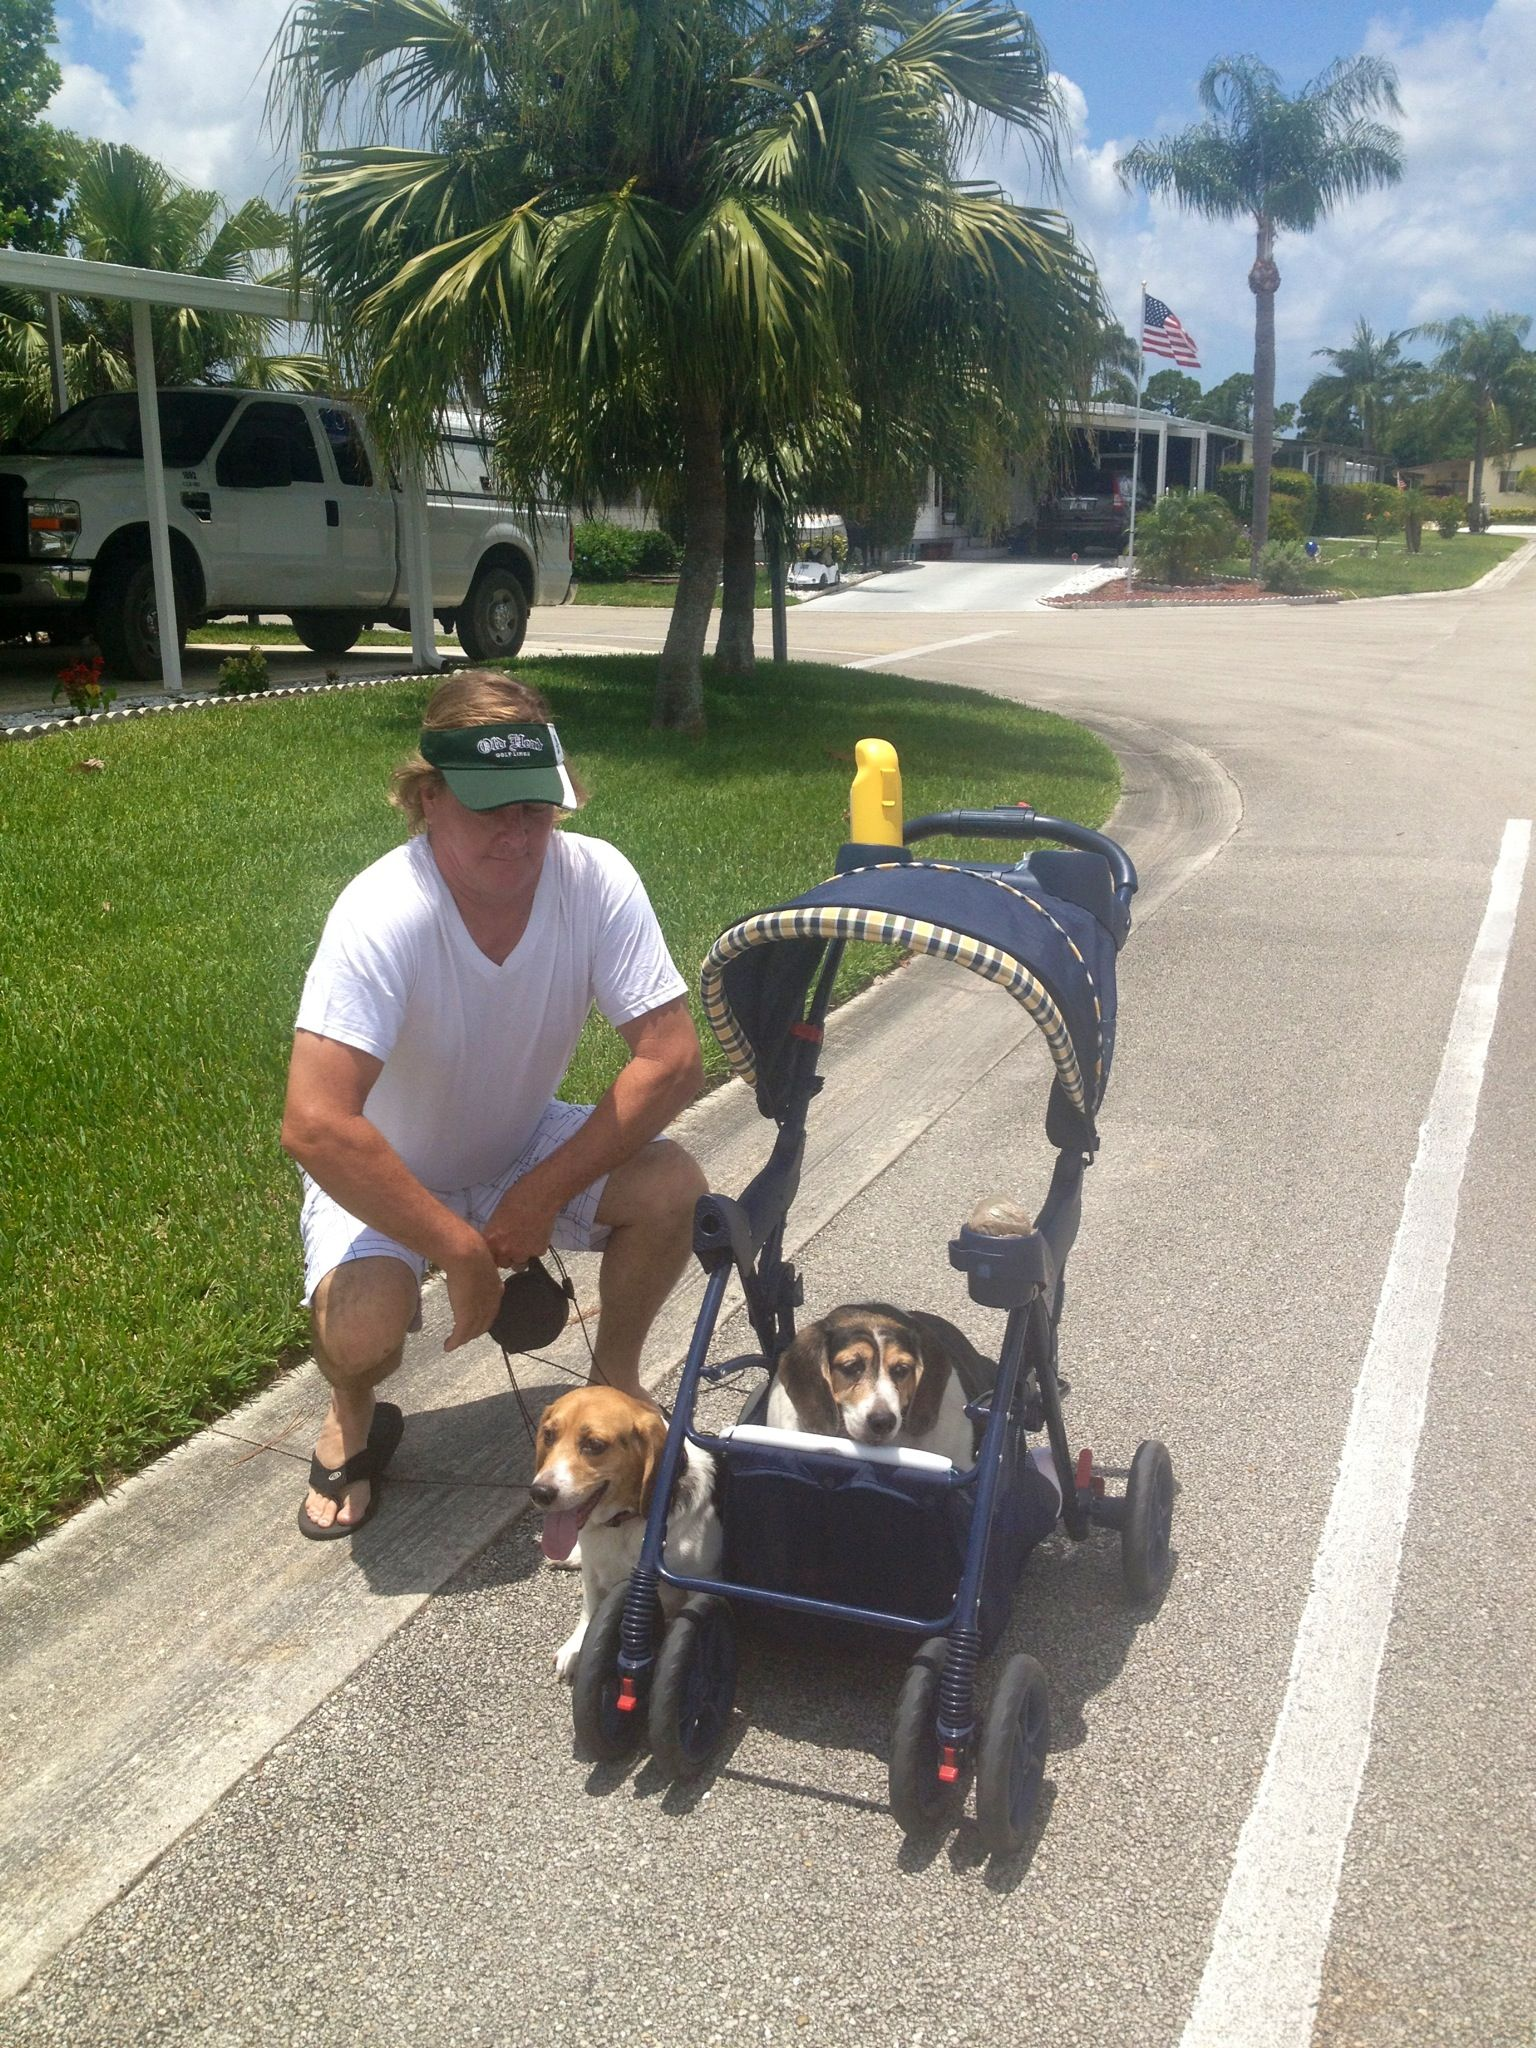 baby stroller converted to a dog stroller for a handicapped baby